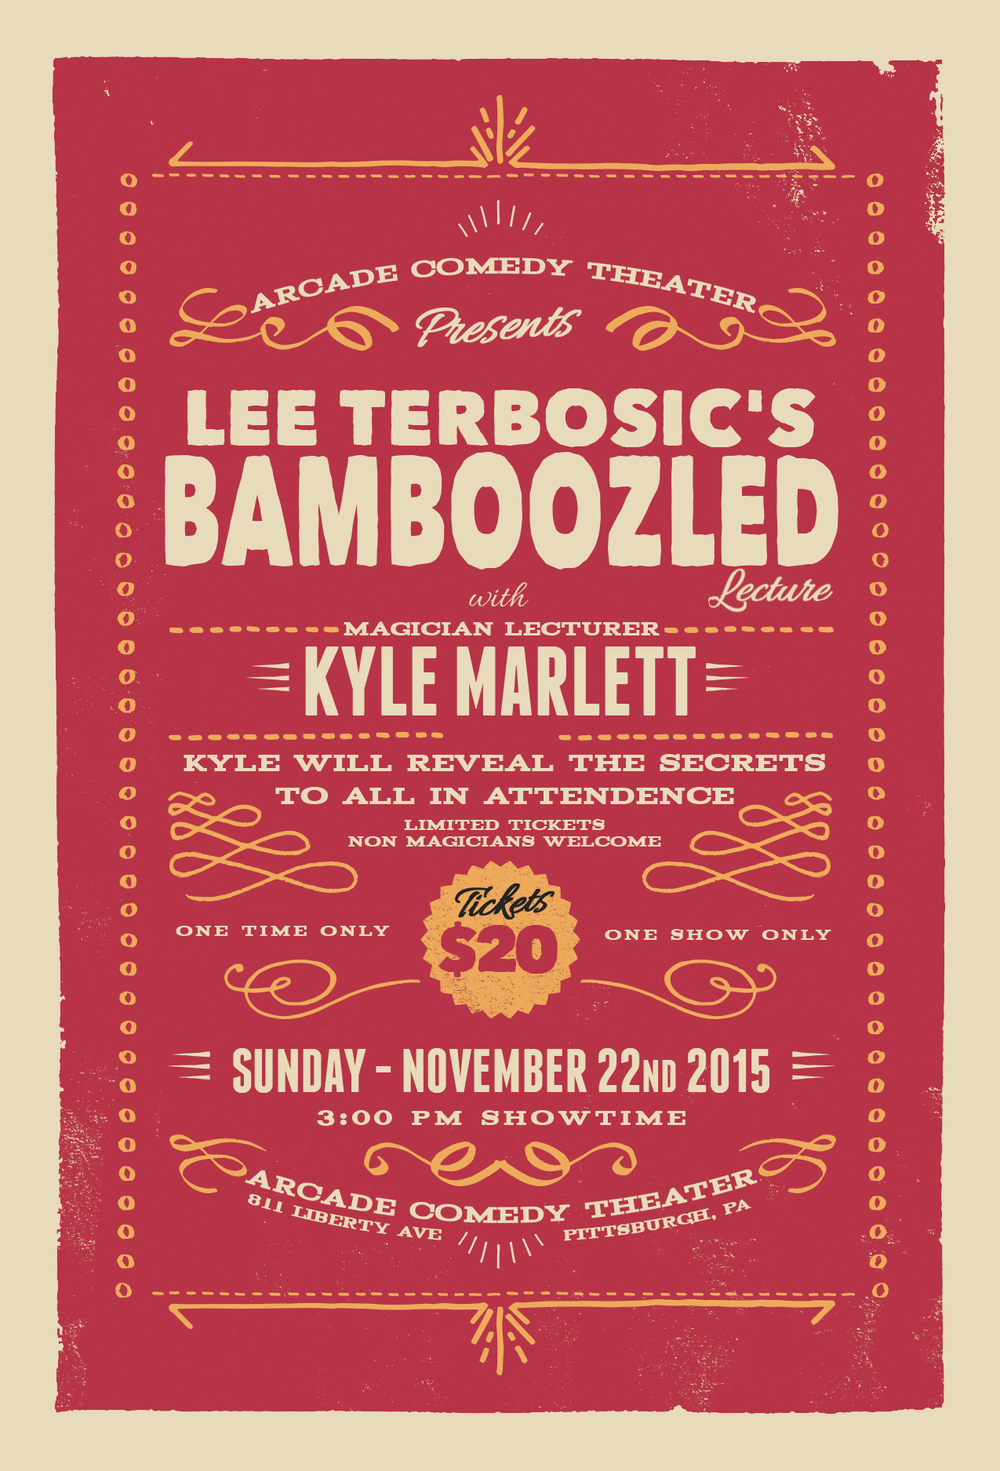 Bamboozled-Lecture-11-22-15-Kyle Marlett-4X6 Flyer.jpg